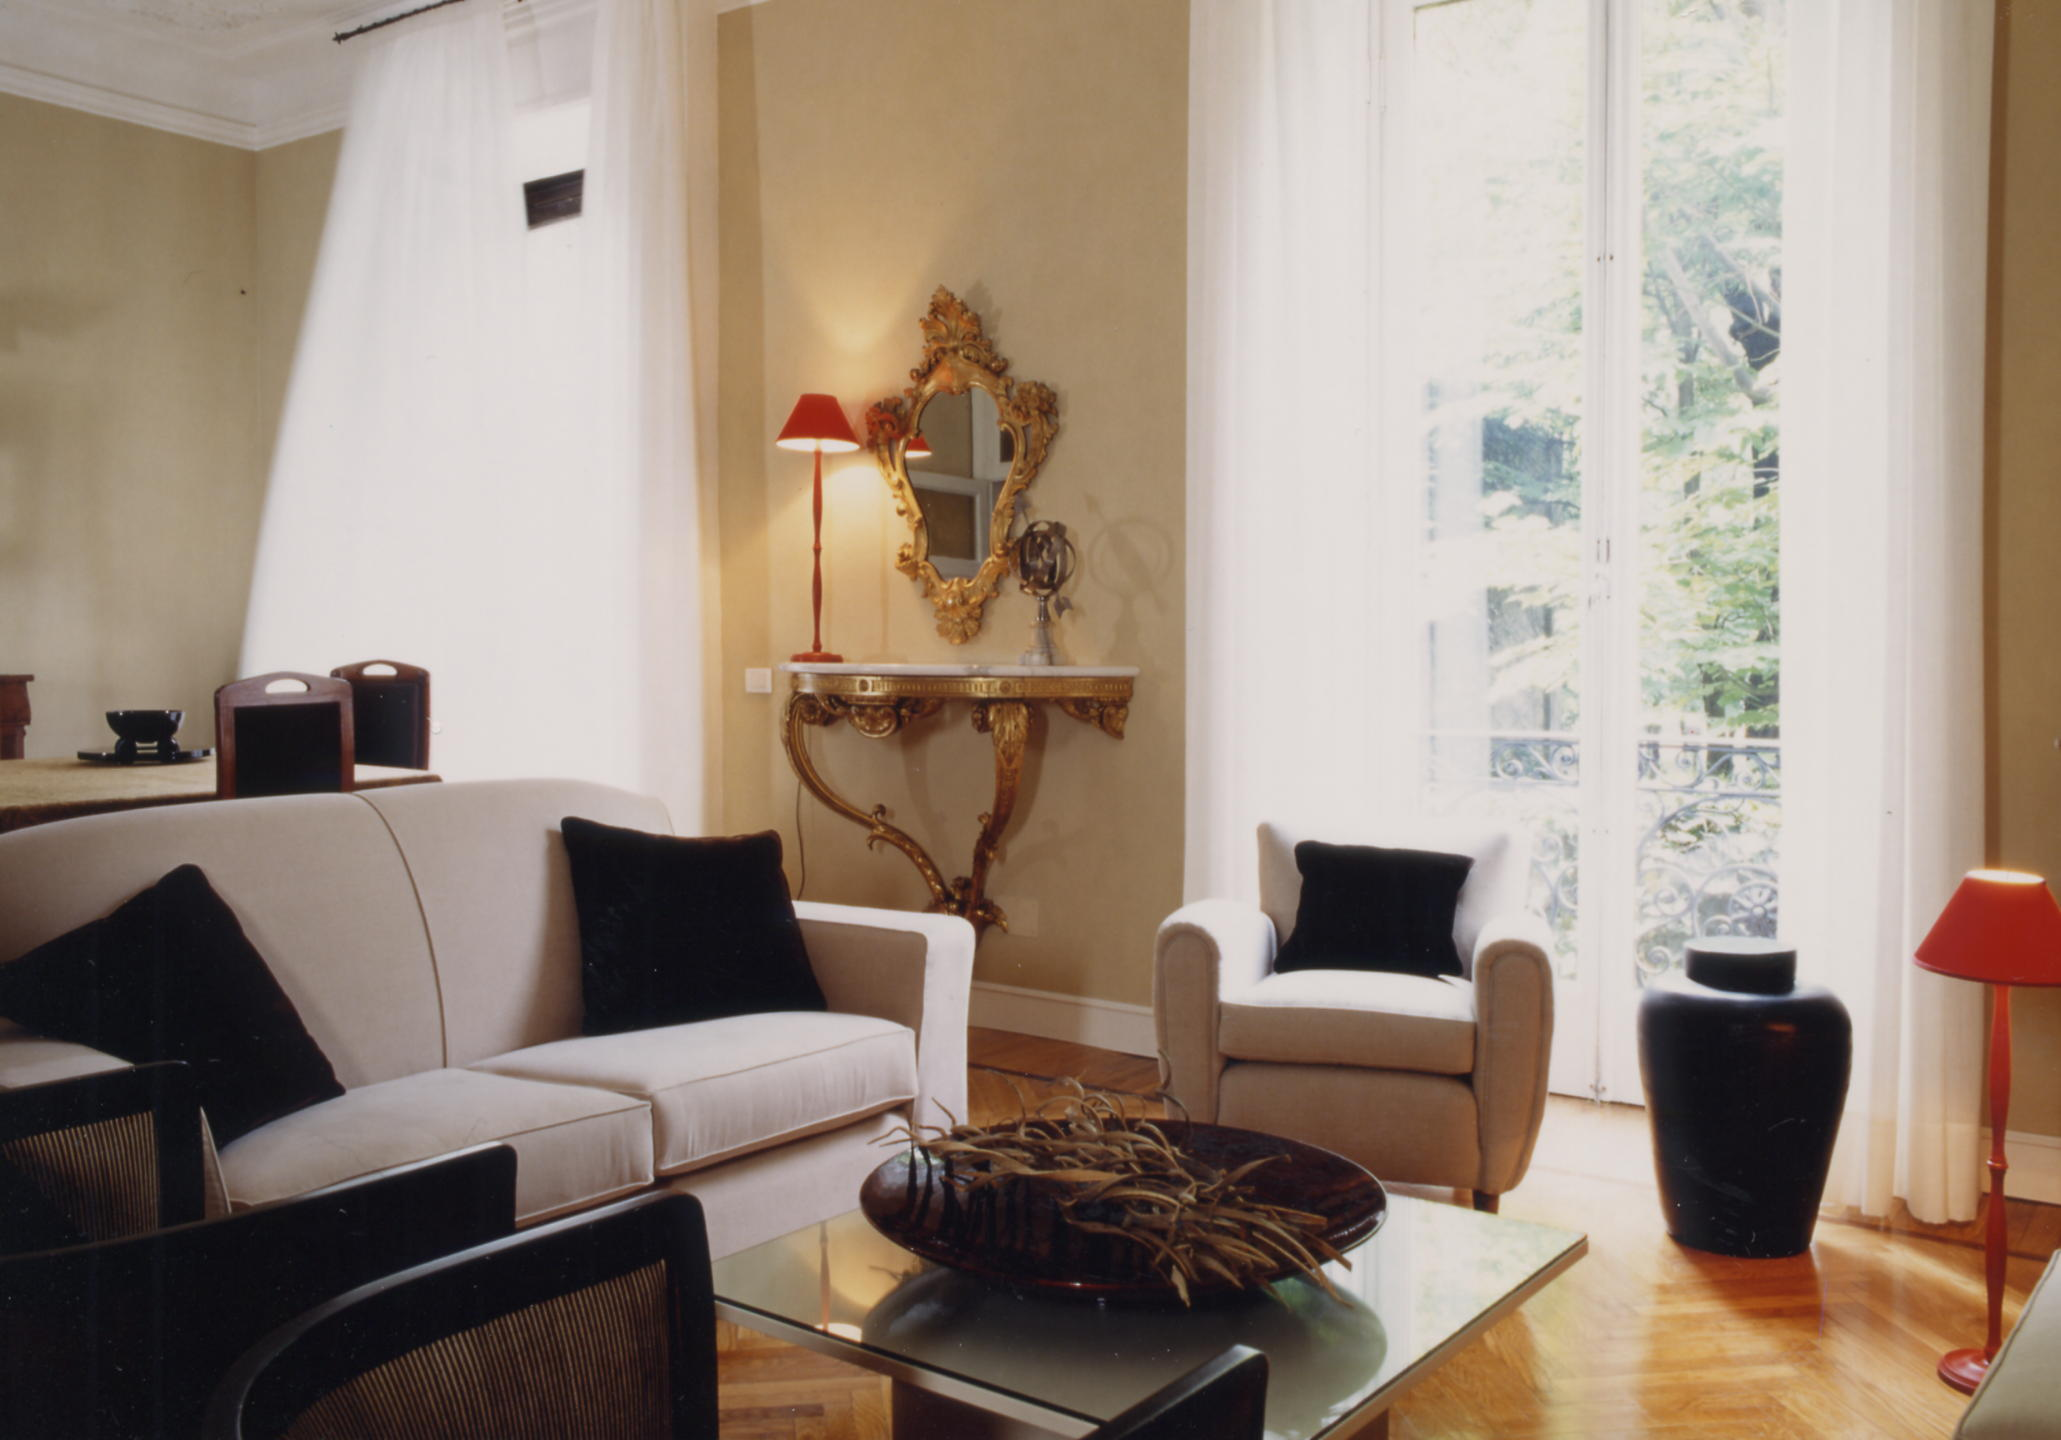 Home interior design, Milano - Alessandro Villa architect